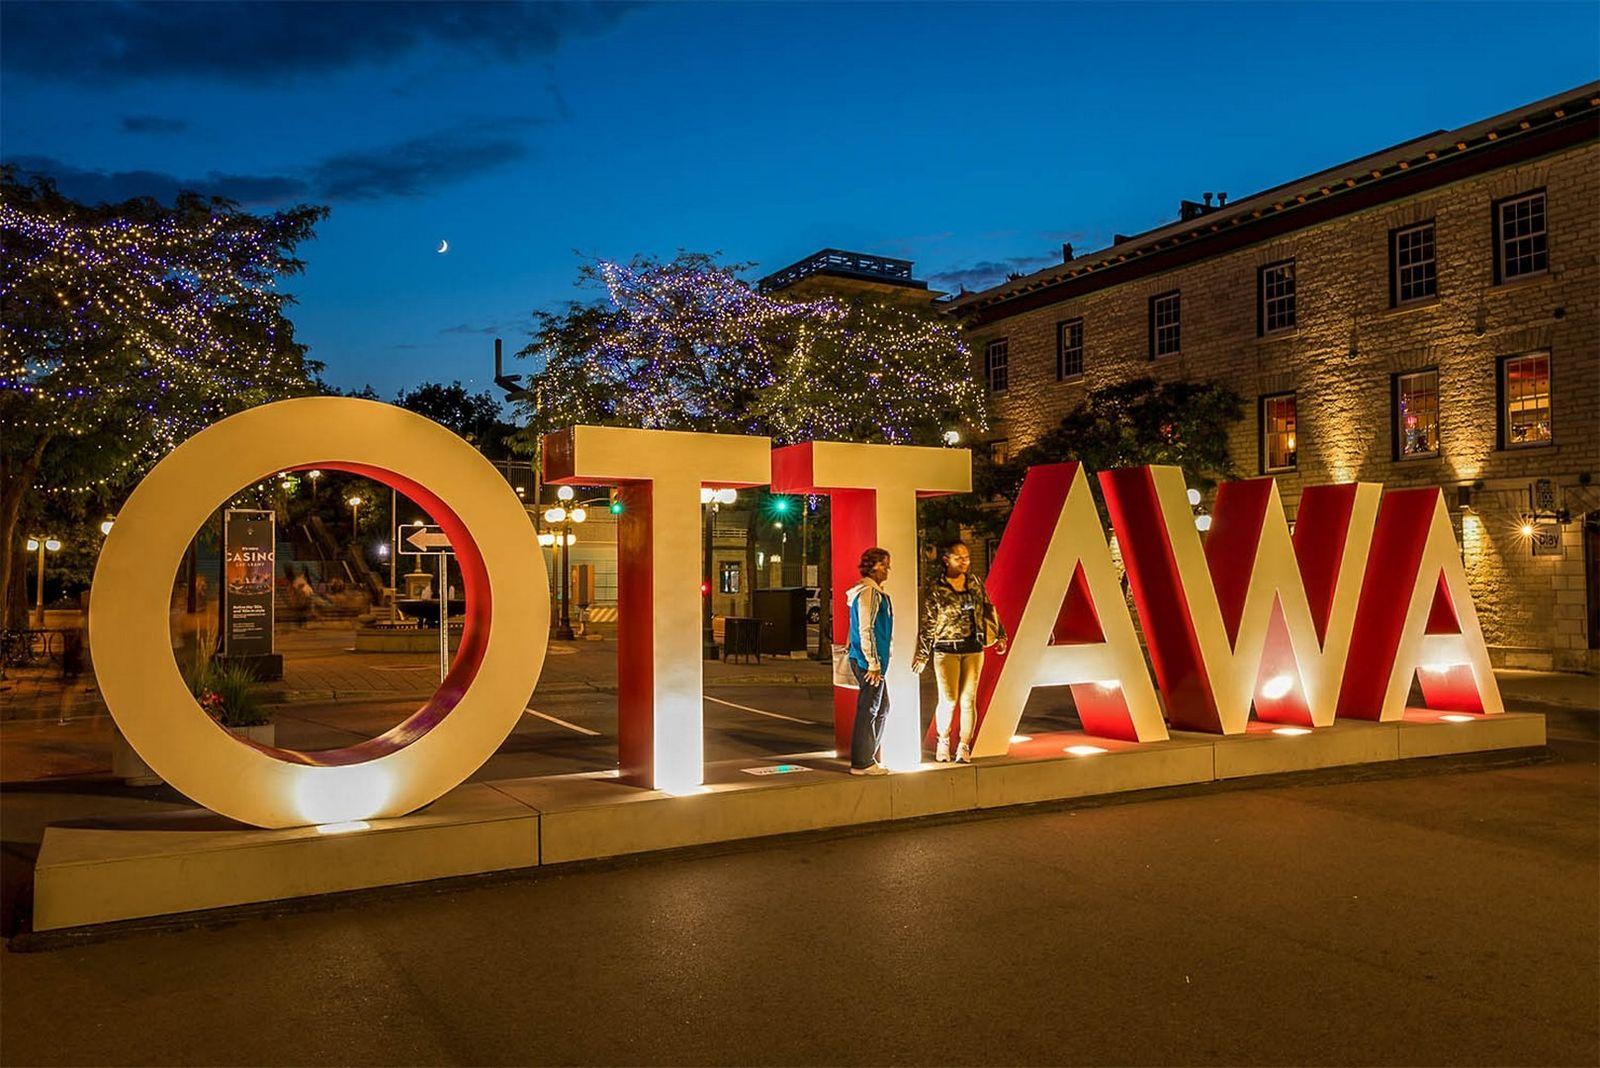 Snap a selfie at the Ottawa sign when you visit the ByWard Market.